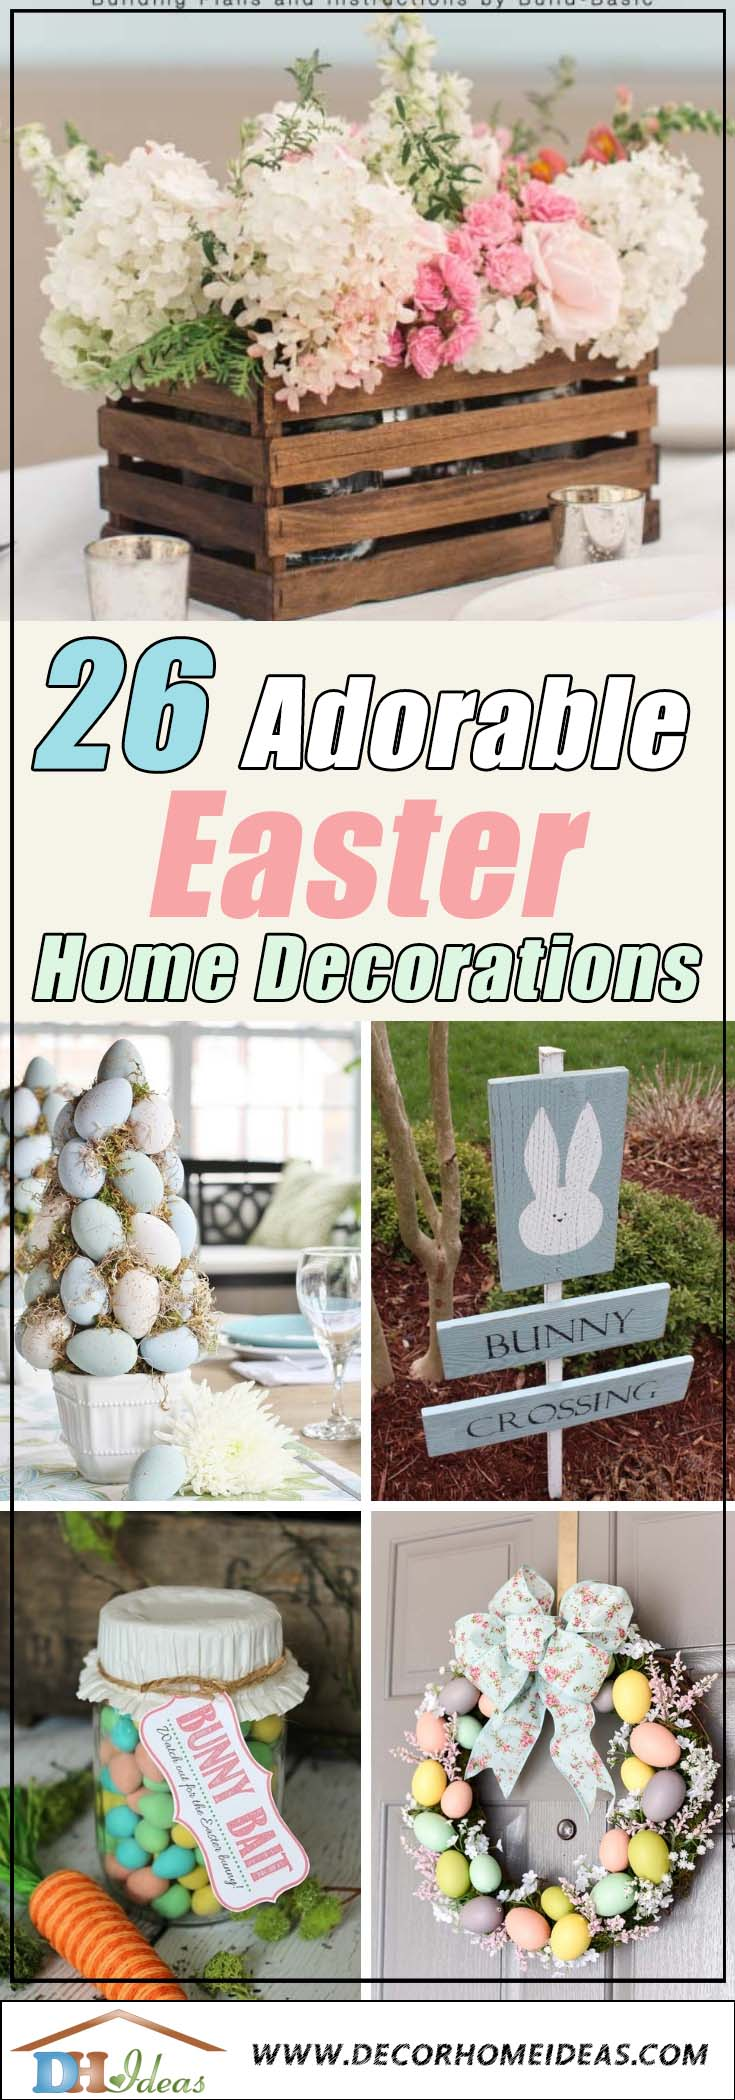 26 Adorable Easter Home Decorations #easter #decoration #spring #diy #decorhomeideas